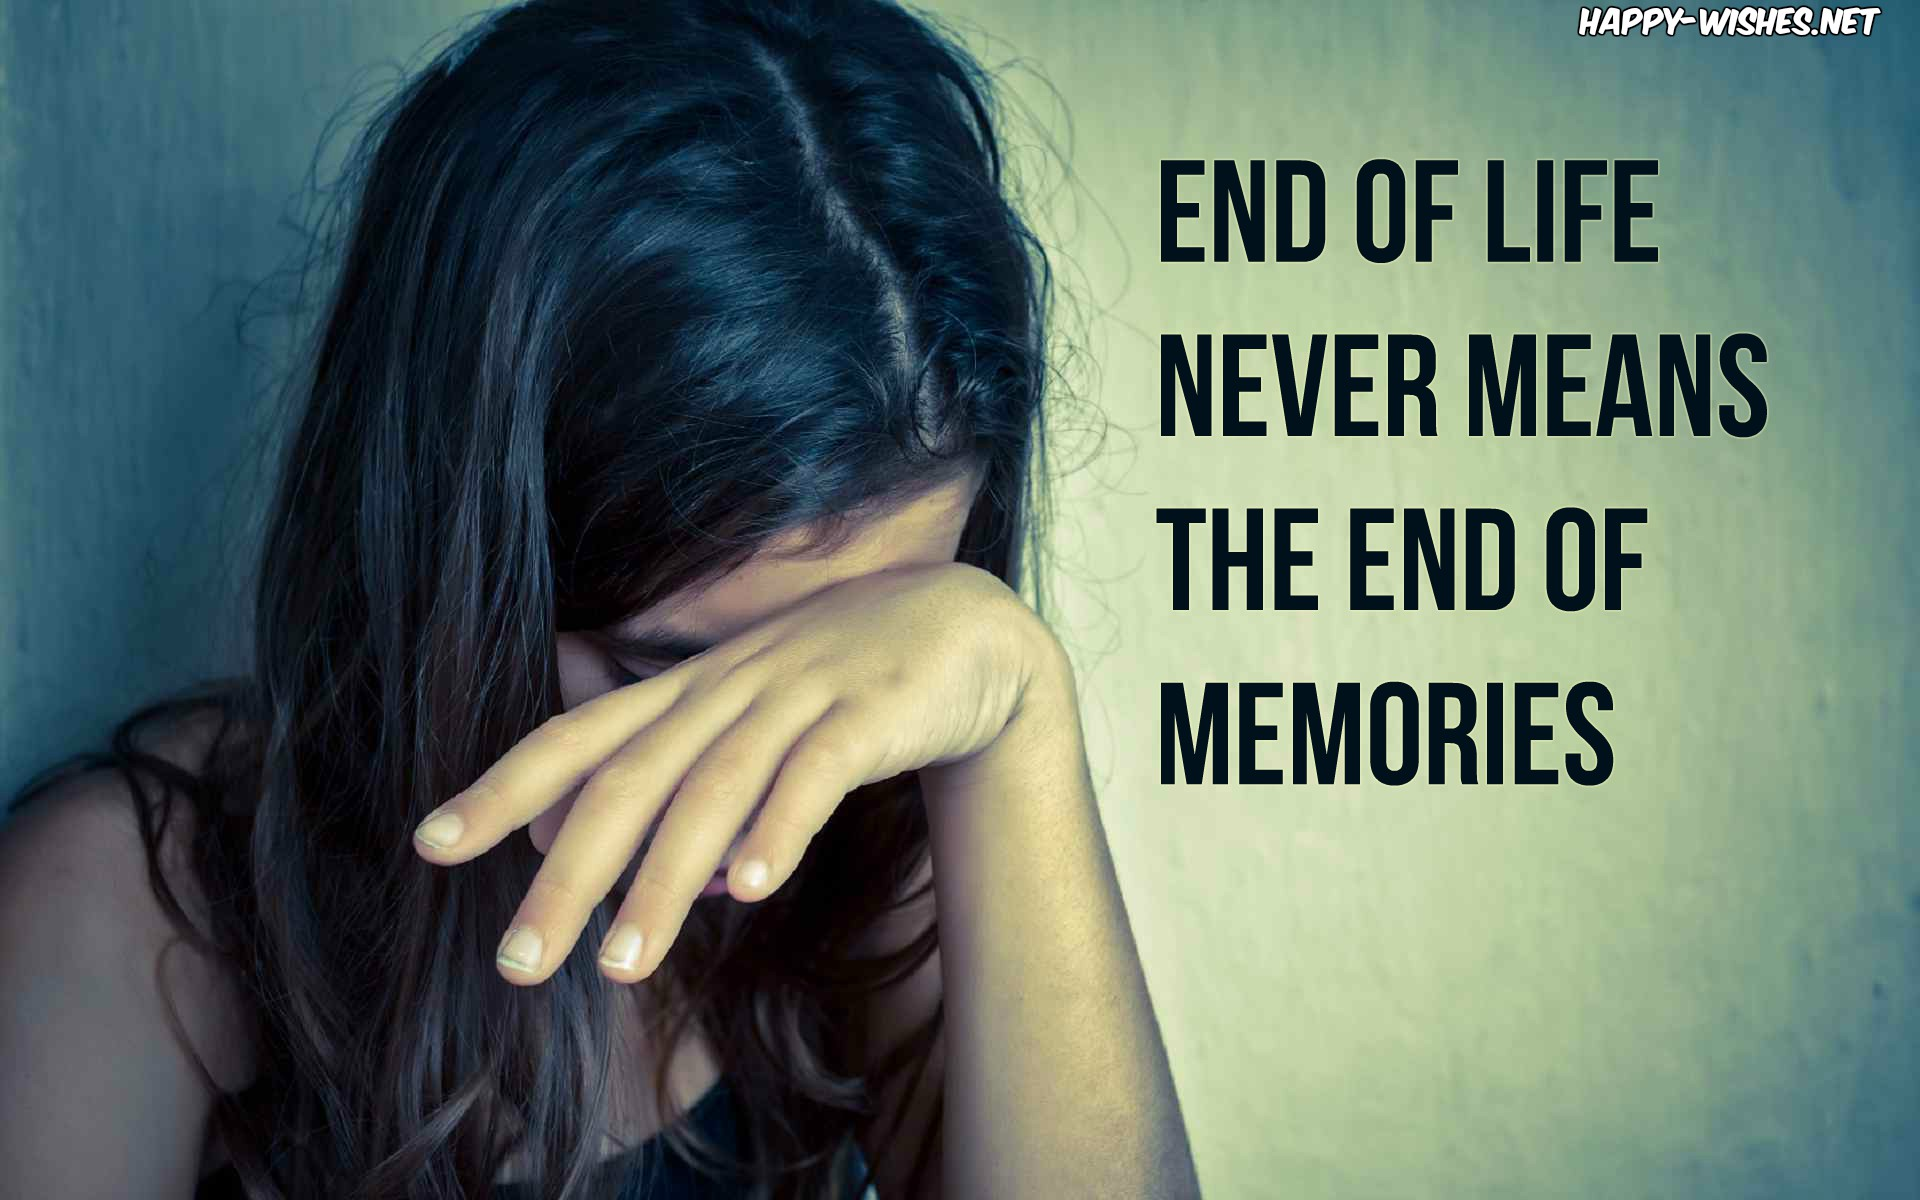 Weeping girl sad quotes about losing a loved one